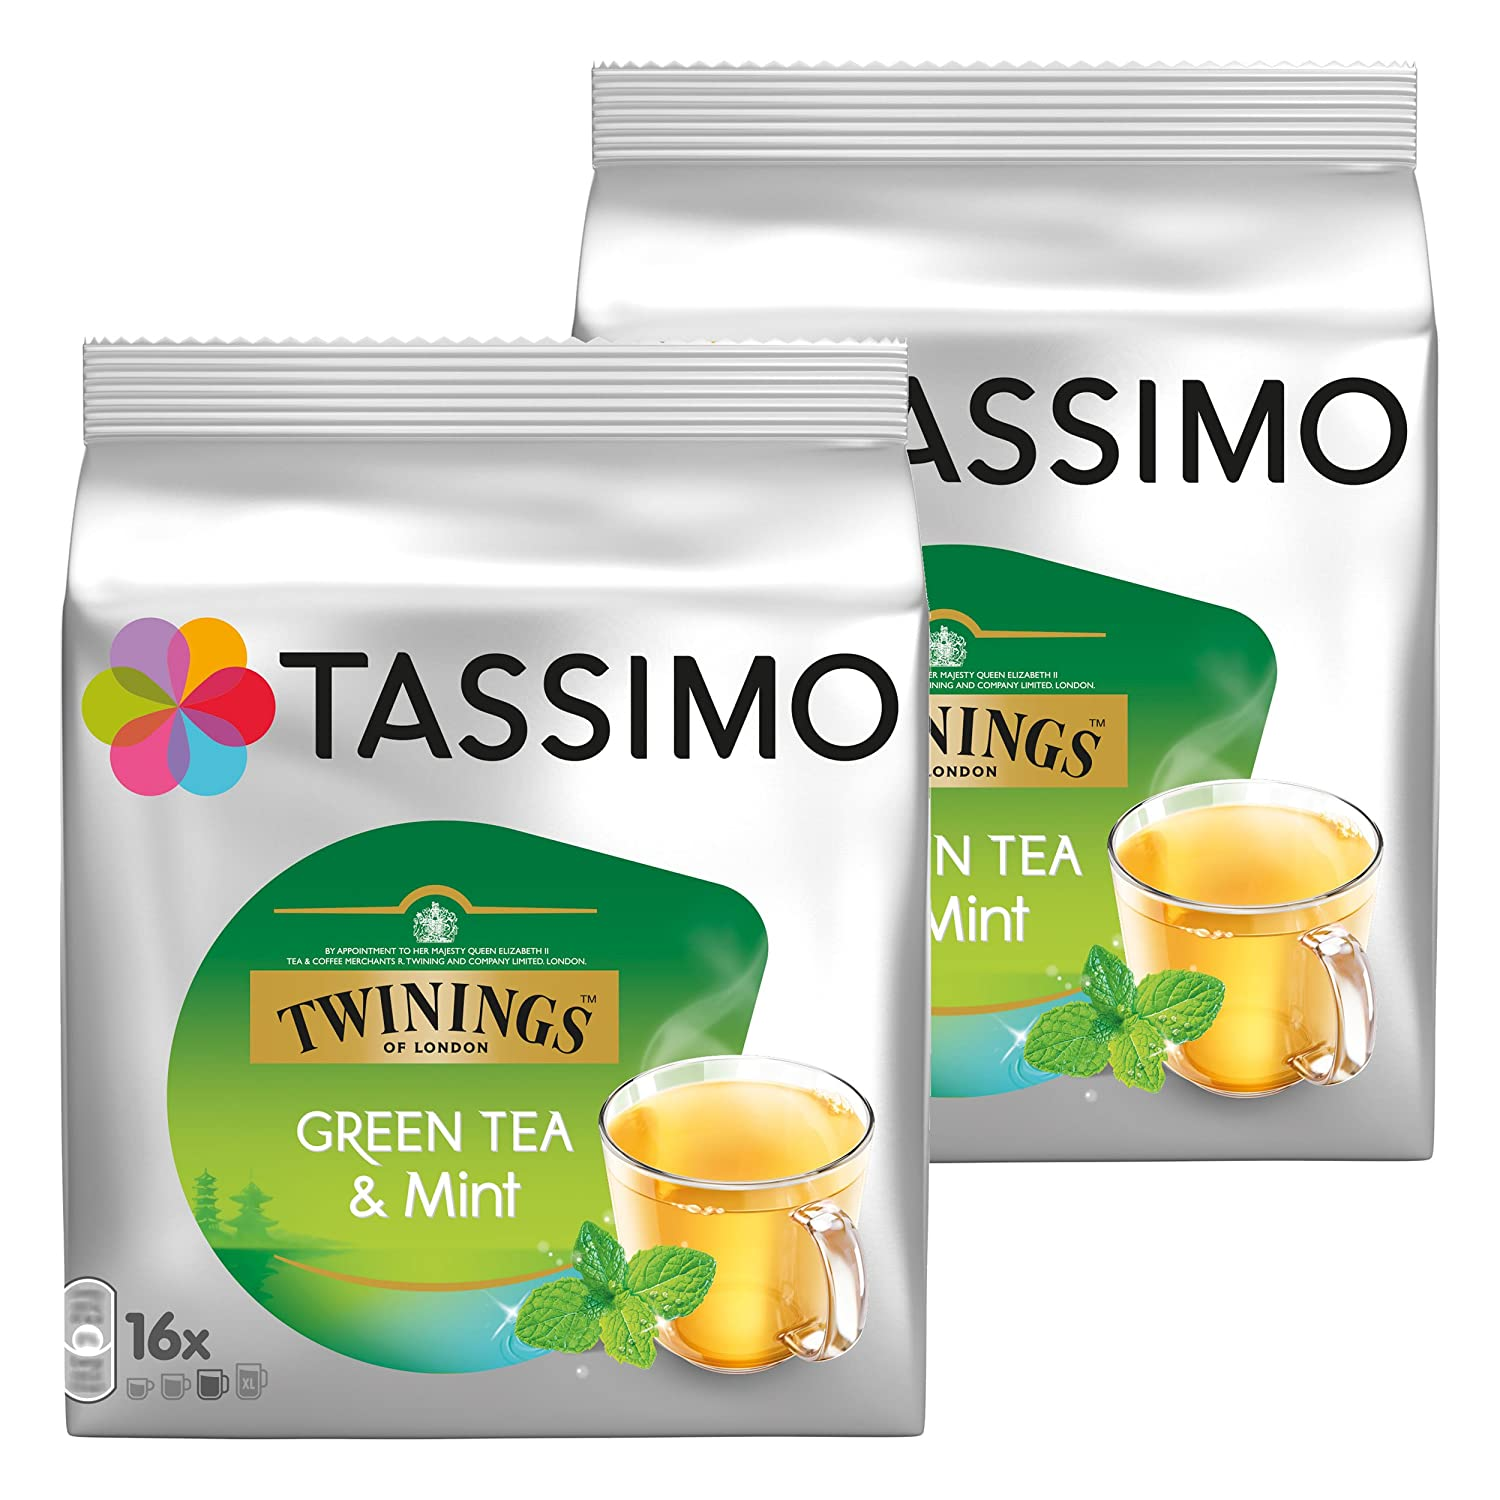 Tassimo Twinings Green Tea & Mint, Pack of 2, 2 x 16 T-Discs